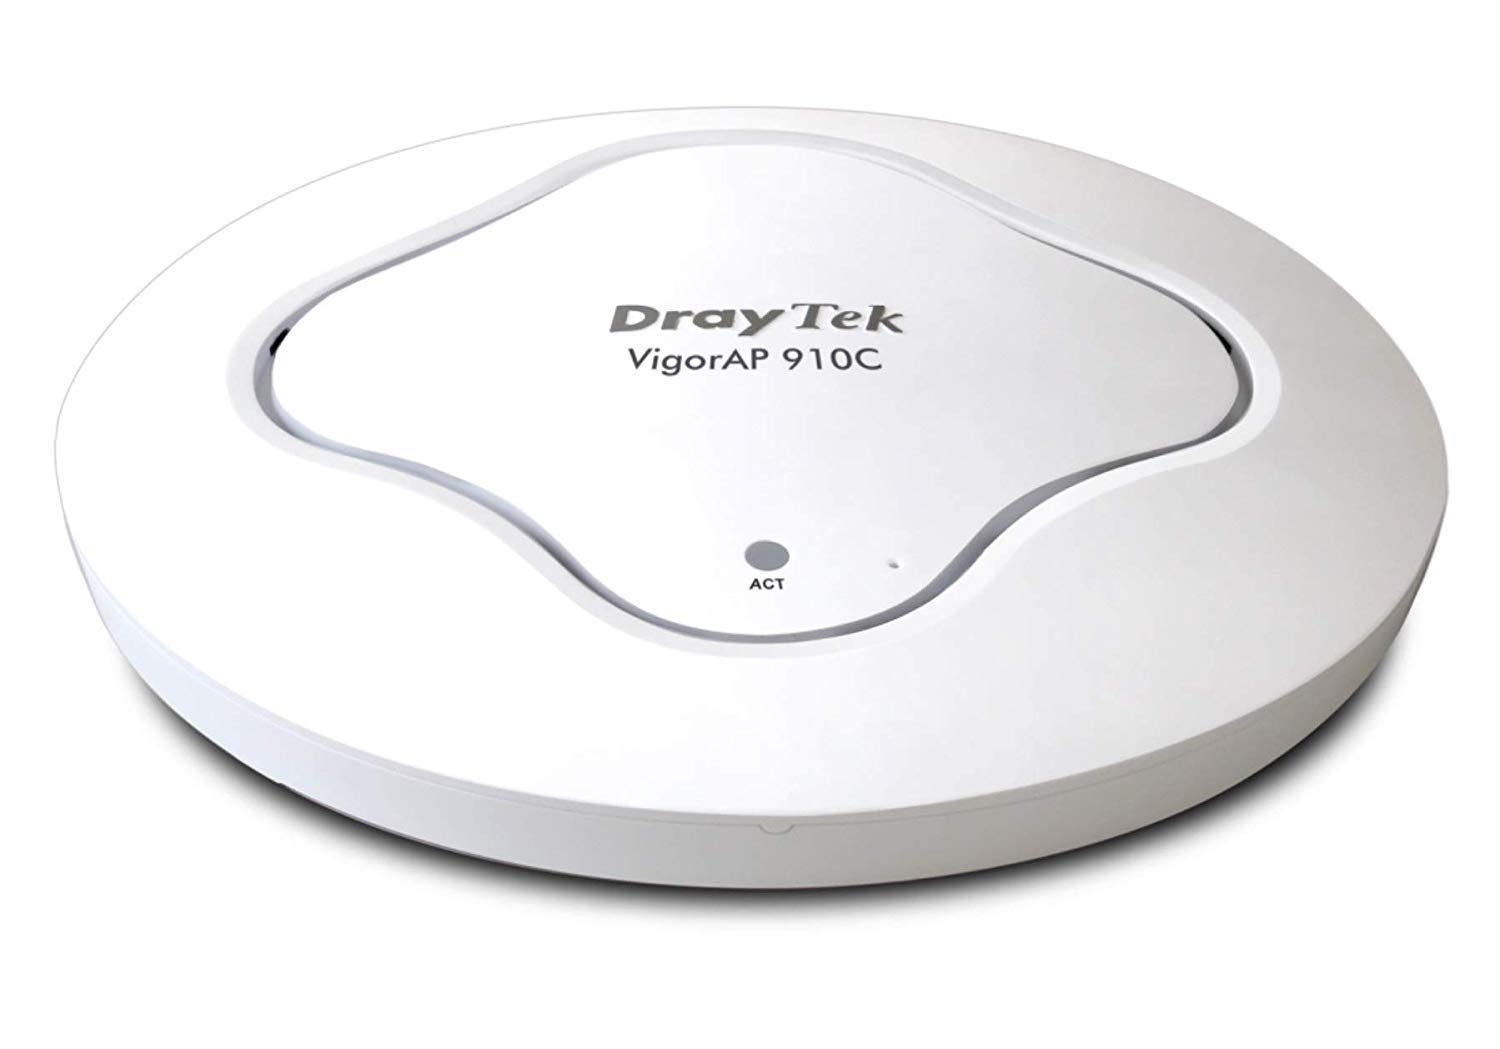 DrayTek Vigor AP910C Dual band (áp trần) PoE Wifi Access Point